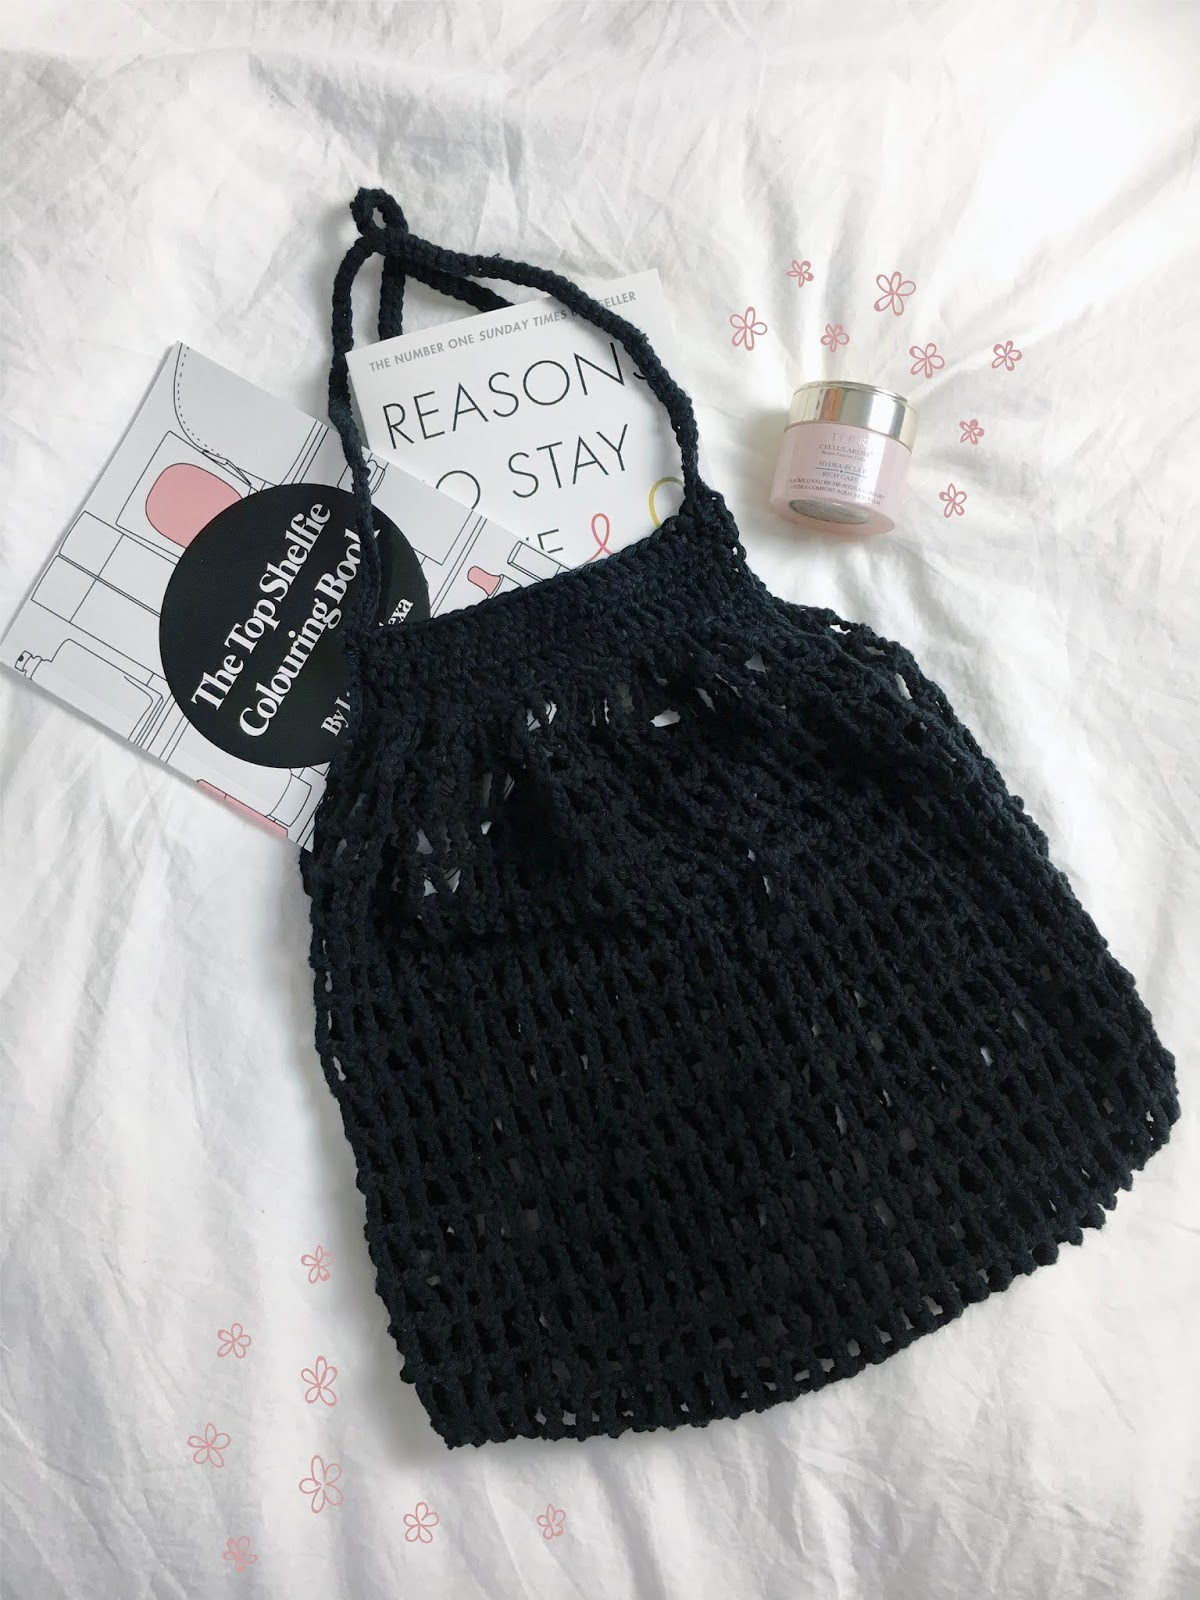 black mesh string hand crochet bag with top shelfie illustrated colouring book and matt haig book how to stay alive